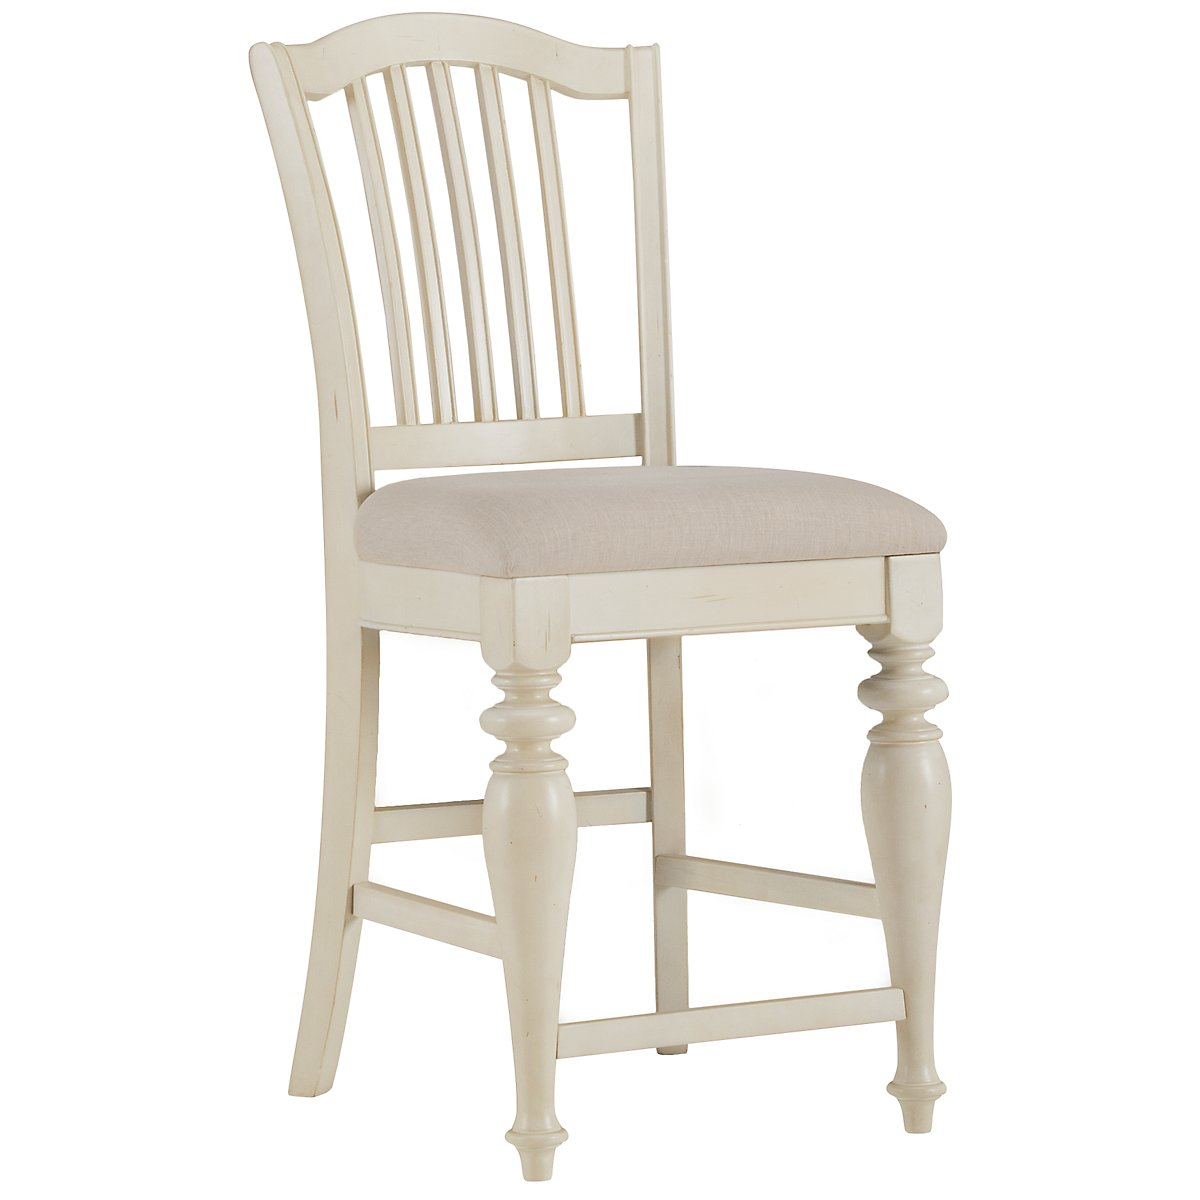 "Coventry White 24"" Wood Barstool"